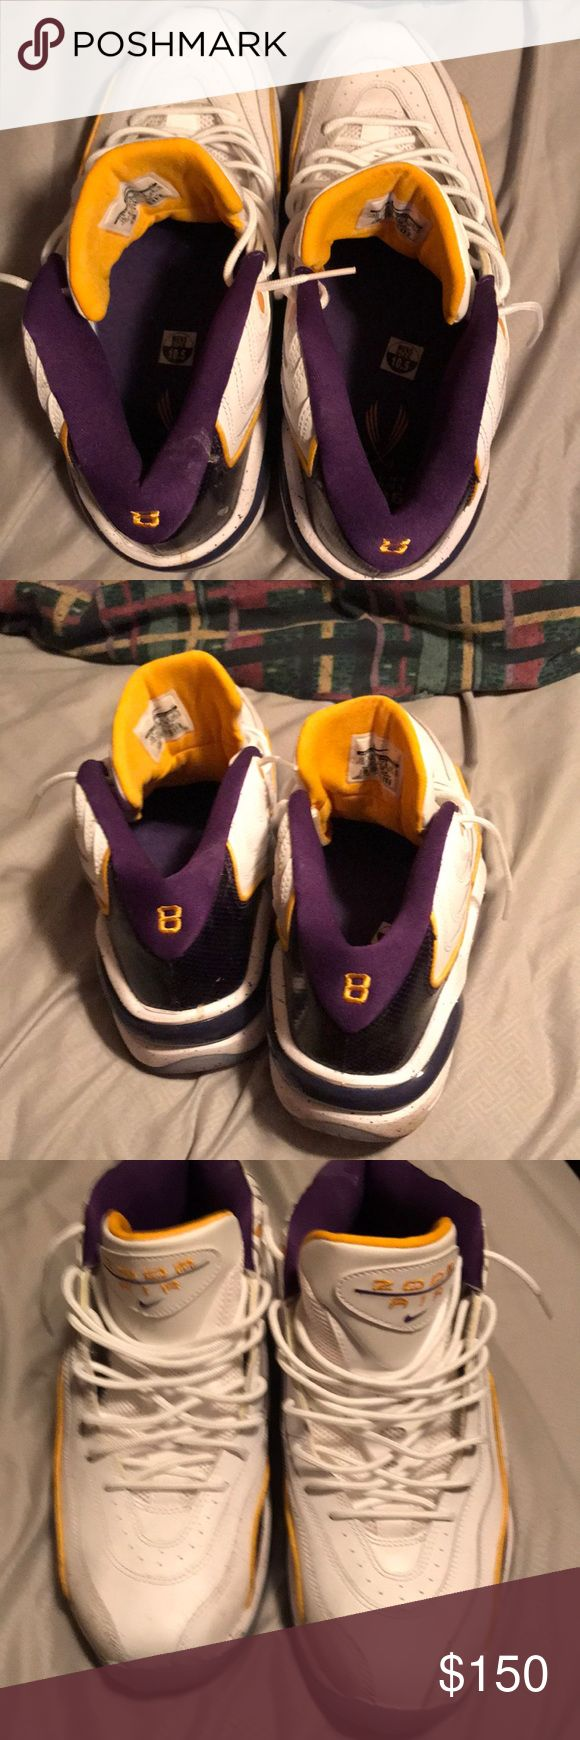 Kobe Bryants limited-edition Flight school 1996 Kobe Bryant's limited edition flight school 1996 when he just started playing 🏀 wearing the Jersey #8 very rare in amazing condition brand new never worn… Very doubtful if you'll be able to find these anywhere… Not just saying that just being truthful… I was a big Kobe Bryant fan and I still am he was the mad machine on the court got his fair share of rings five rings one short of MJ ... go Lakers this would make a great pair for you Laker…